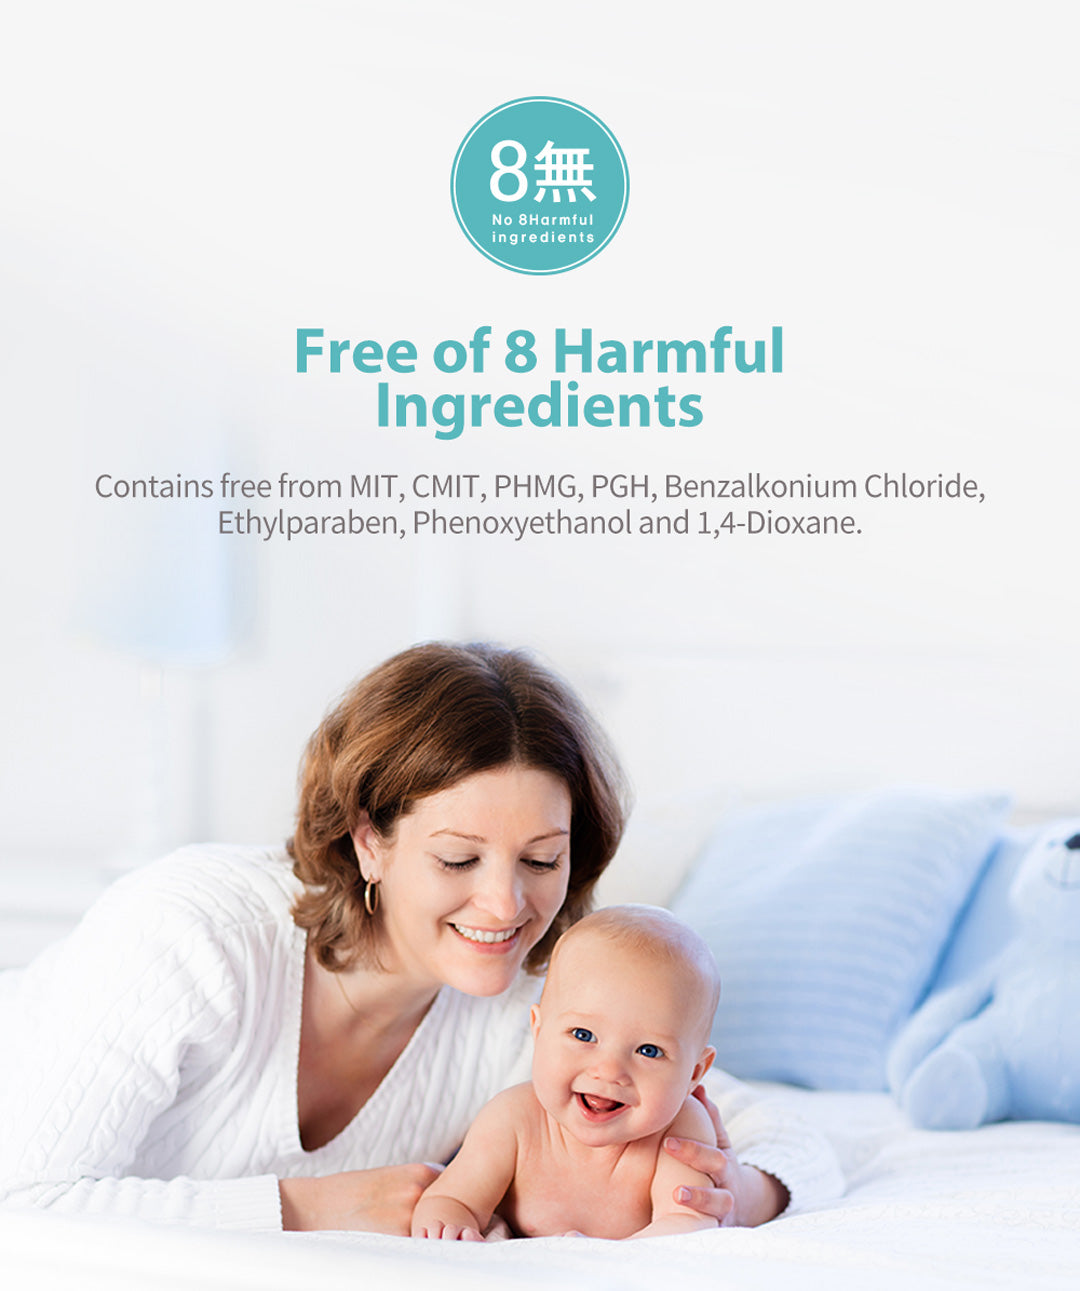 Content Free of 8 Harmful Ingredients